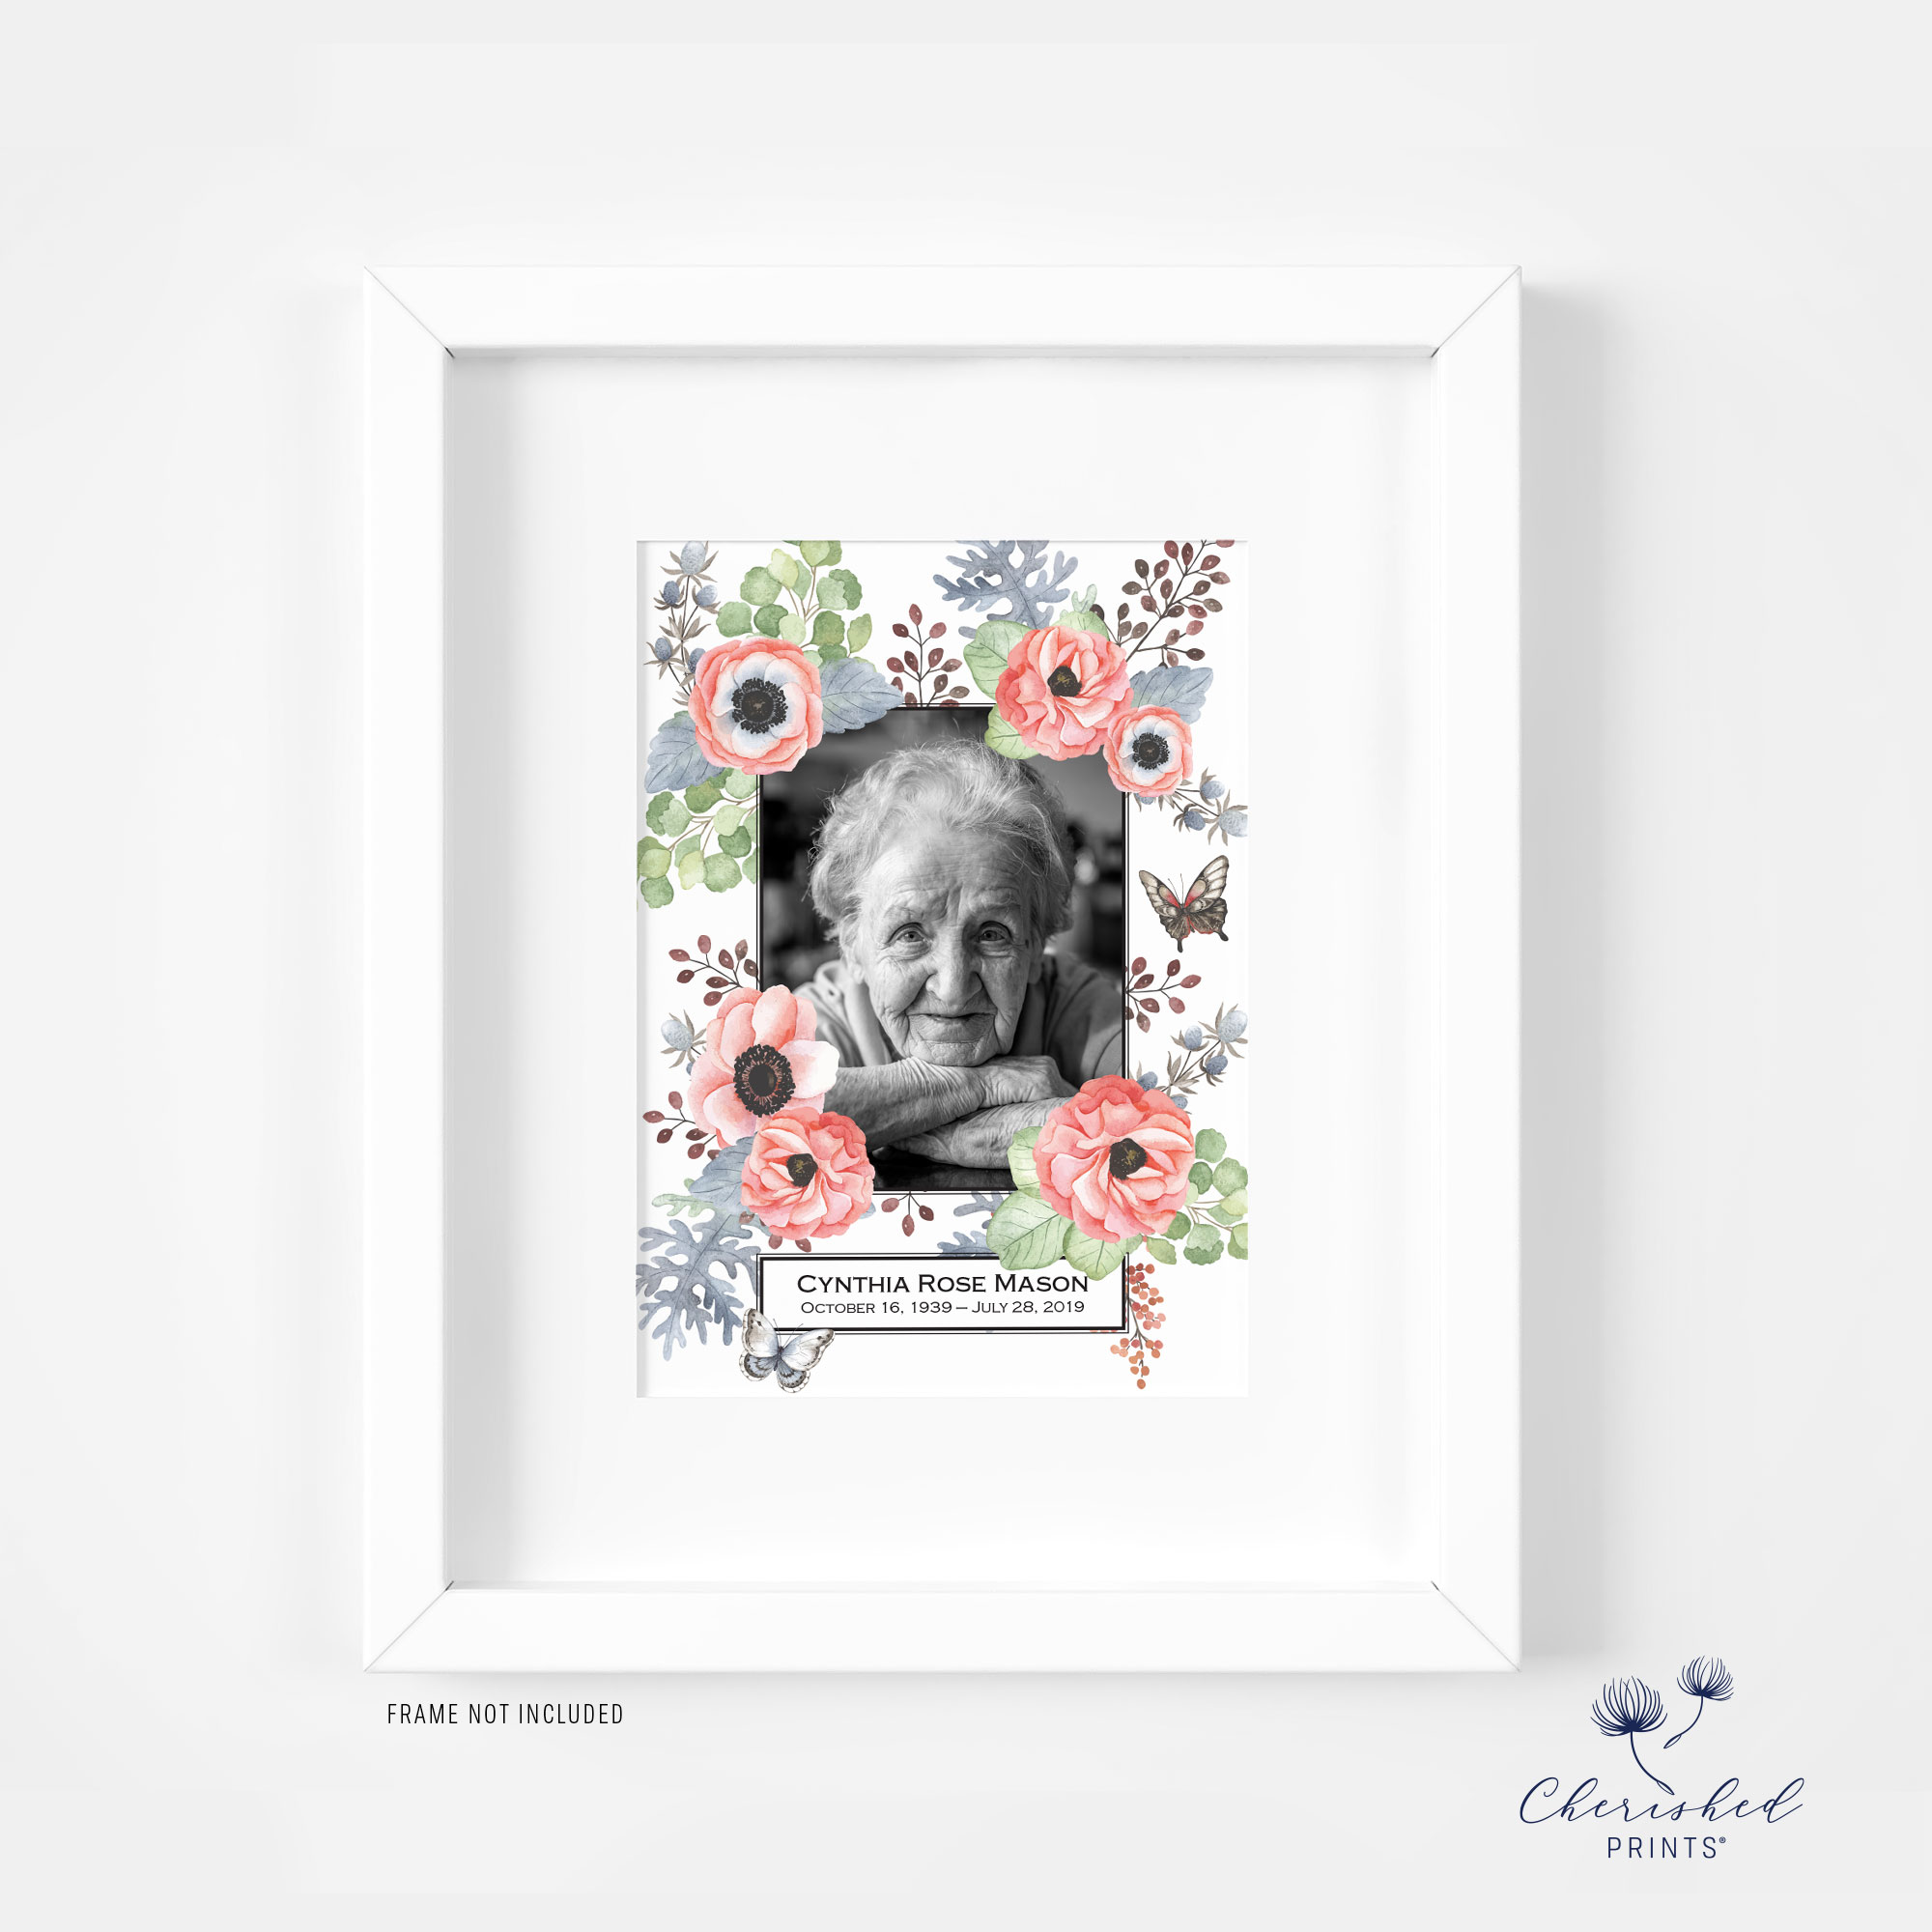 Framed Anemones Announcement